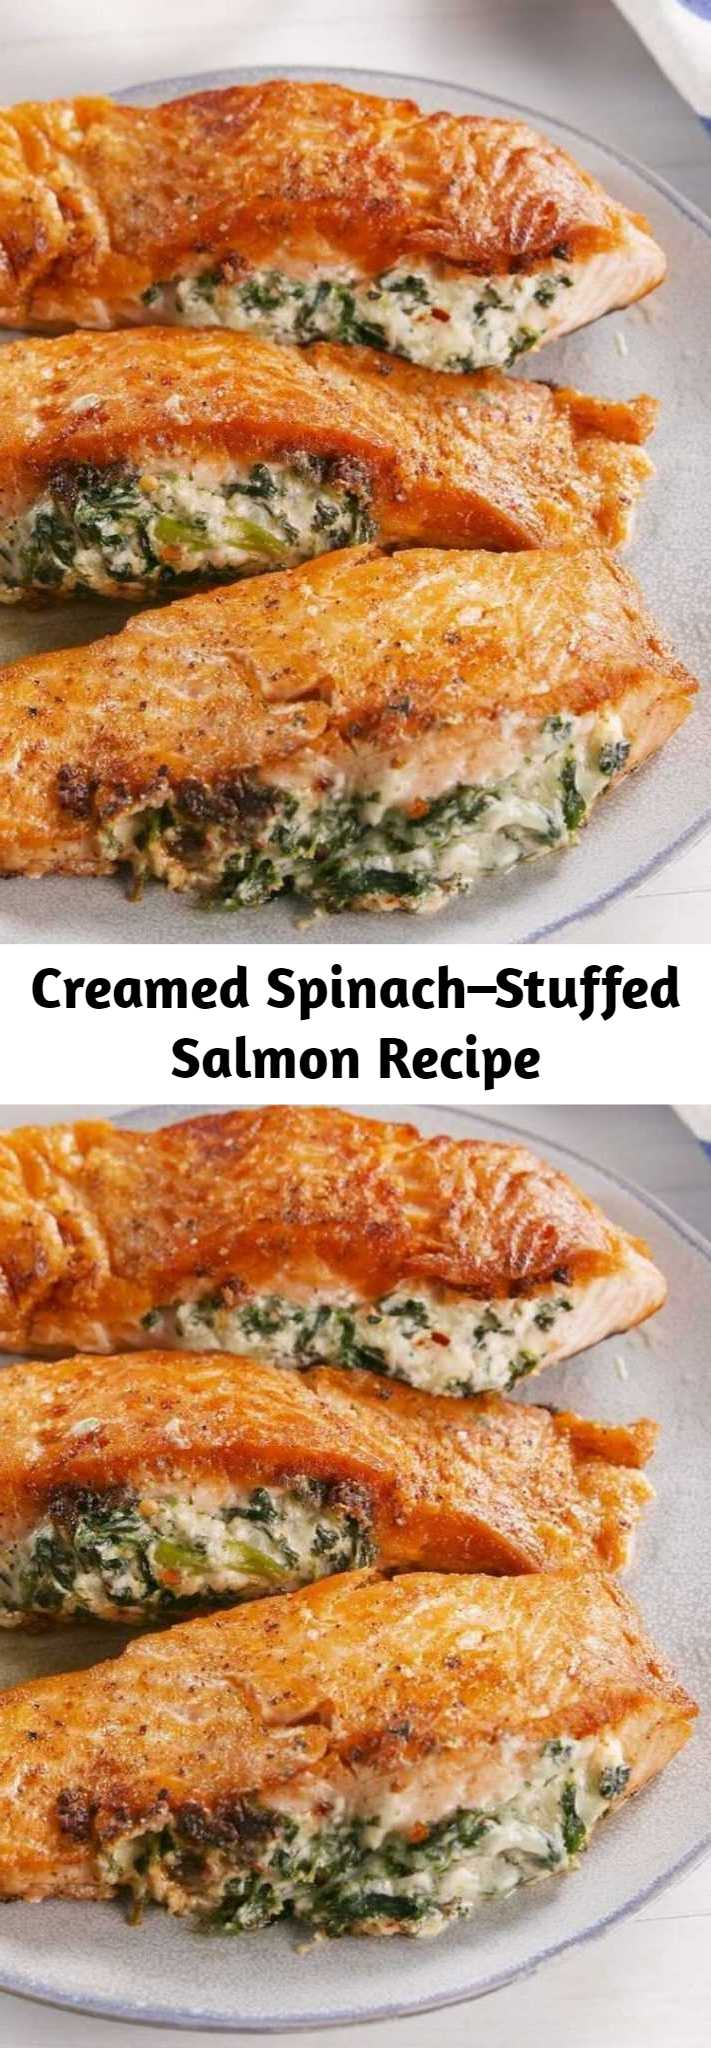 Creamed Spinach–Stuffed Salmon Recipe - If you're skeptical about the combination of cheese and salmon, don't be. We promise you, it's AMAZING. #easy #recipe #salmon #stuffed #seafood #dinners #creamcheese #cheesy #garlic #stuffing